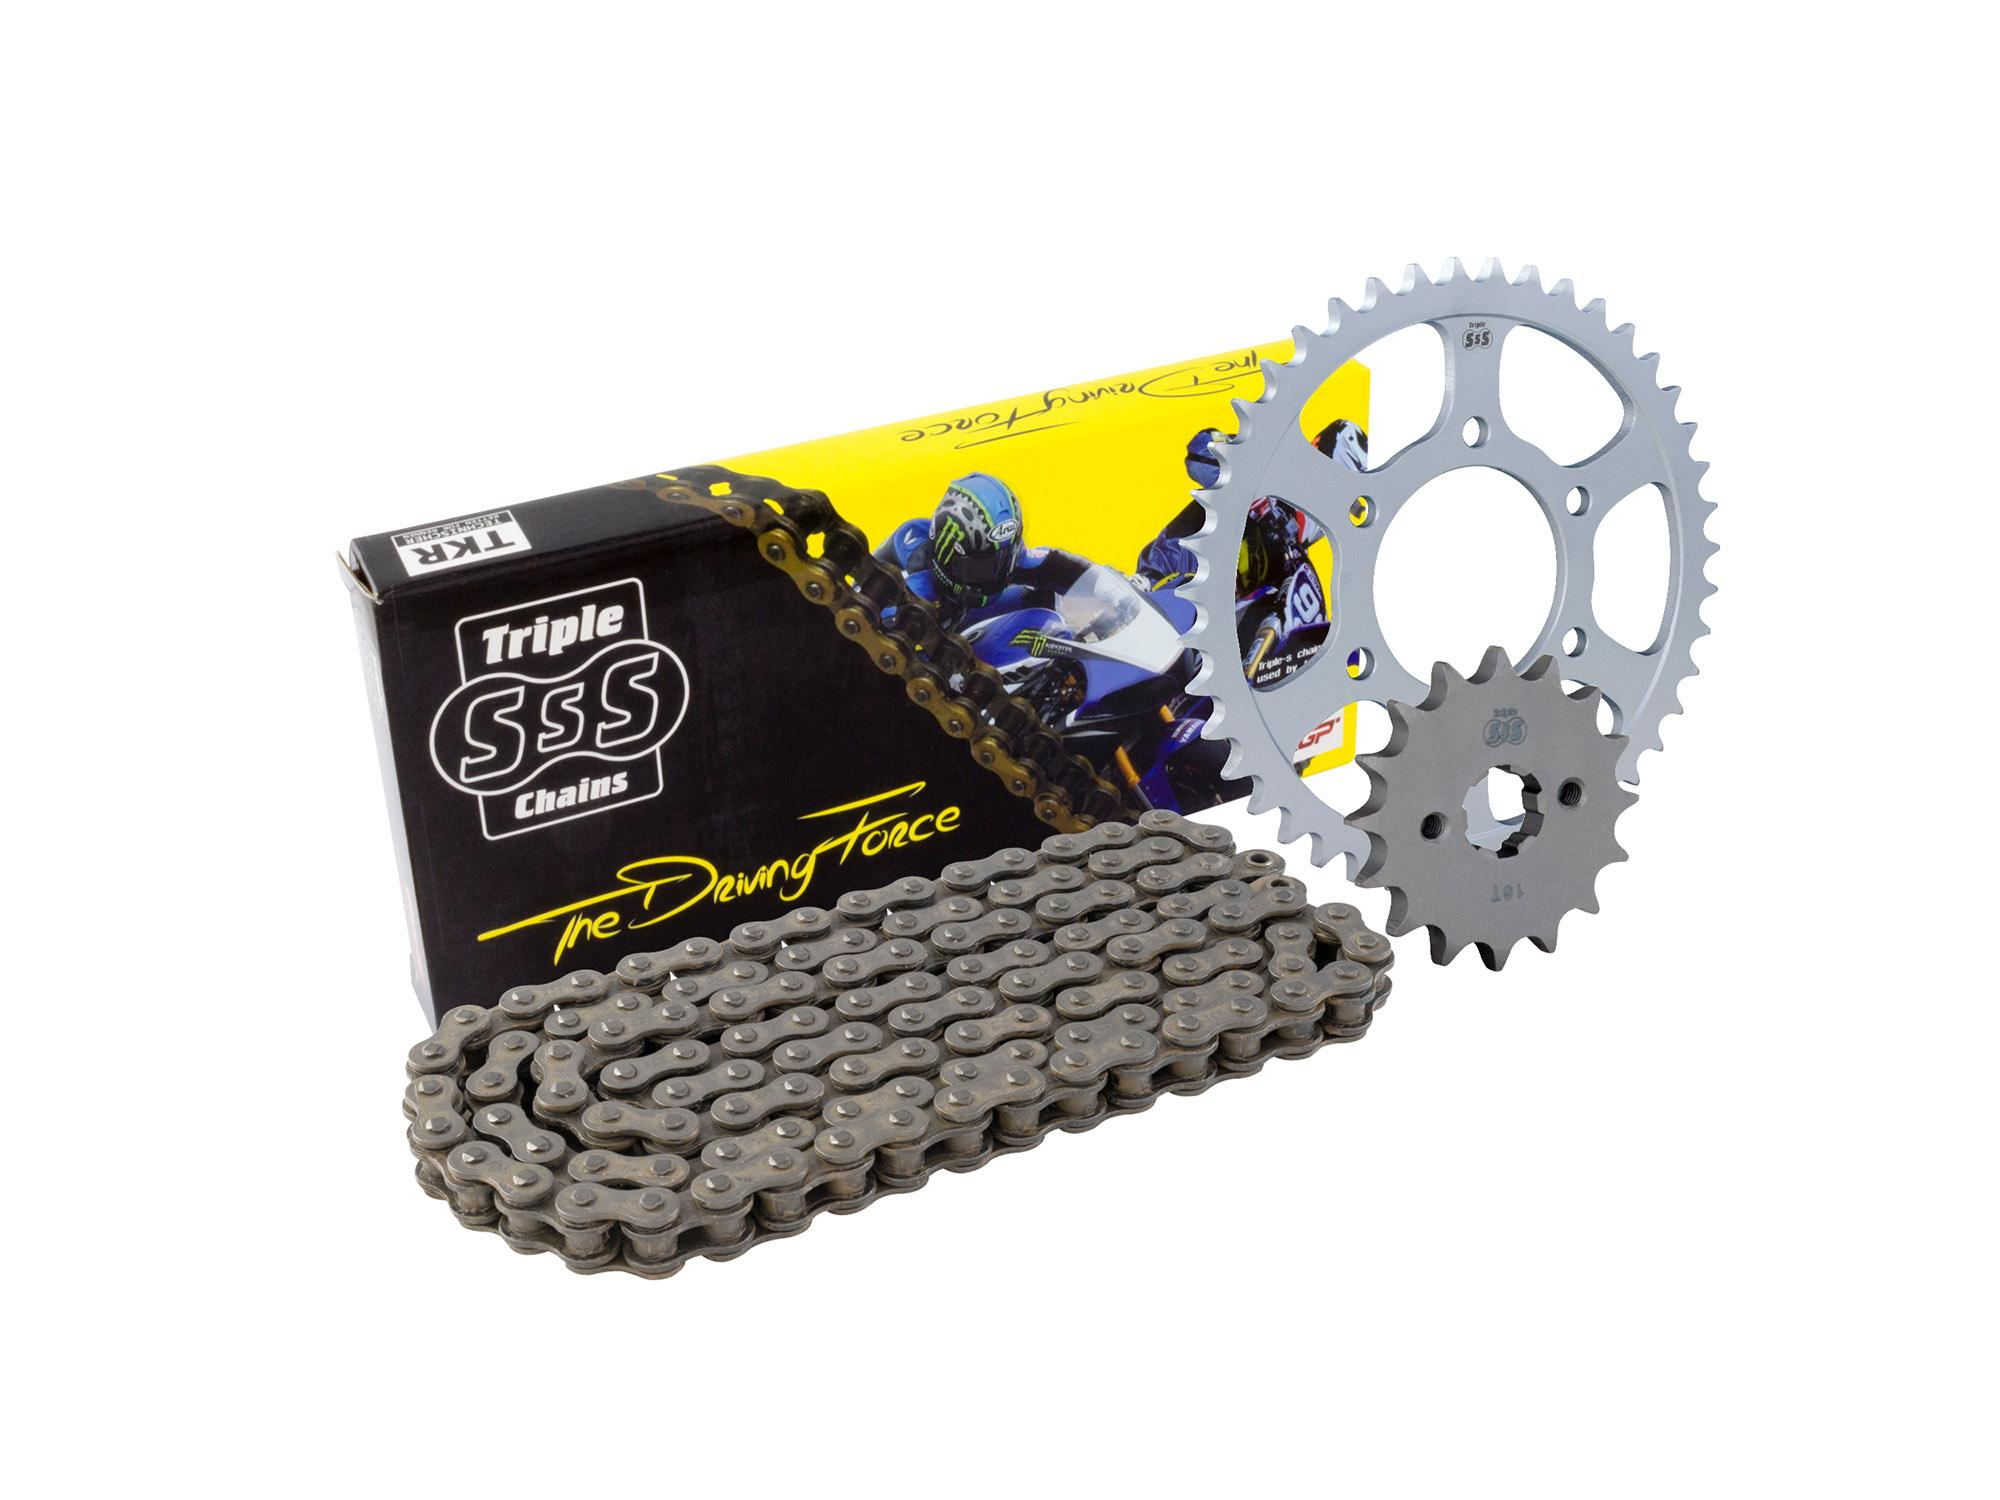 Suzuki GS500 E-R/S/T/V/W (2cyl) 94-98 Chain & Sprocket Kit: 16T Front, 39T Rear, HD O-Ring Black Chain 520H 112 Link